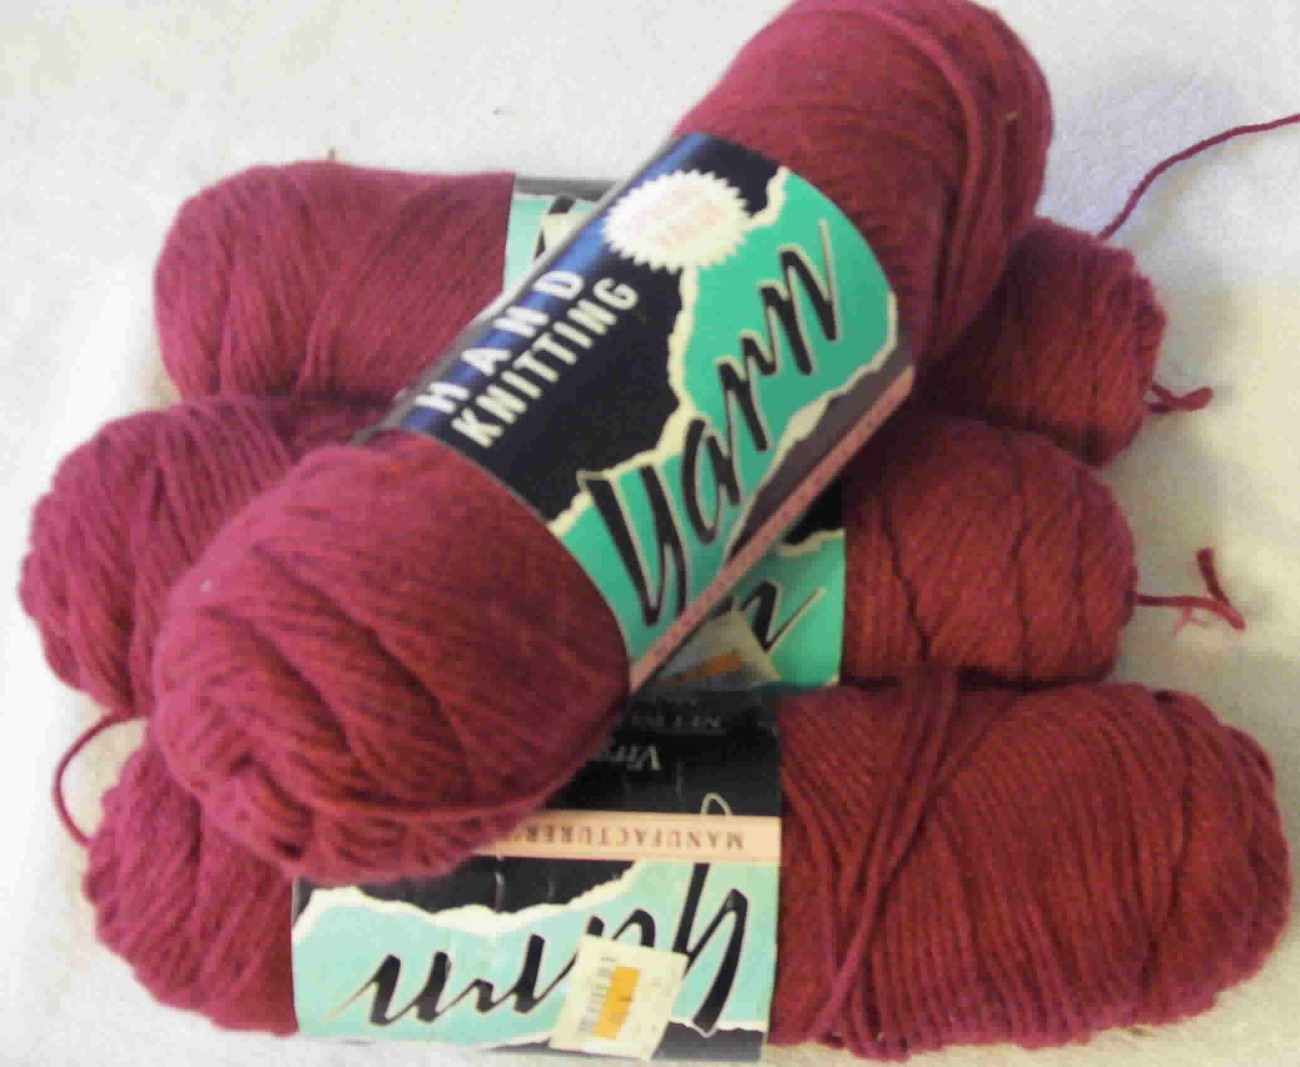 Hand Knitting Yarn : Hand Knitting Yarn Manufacturers Mill Ends 4 skeins - Yarn